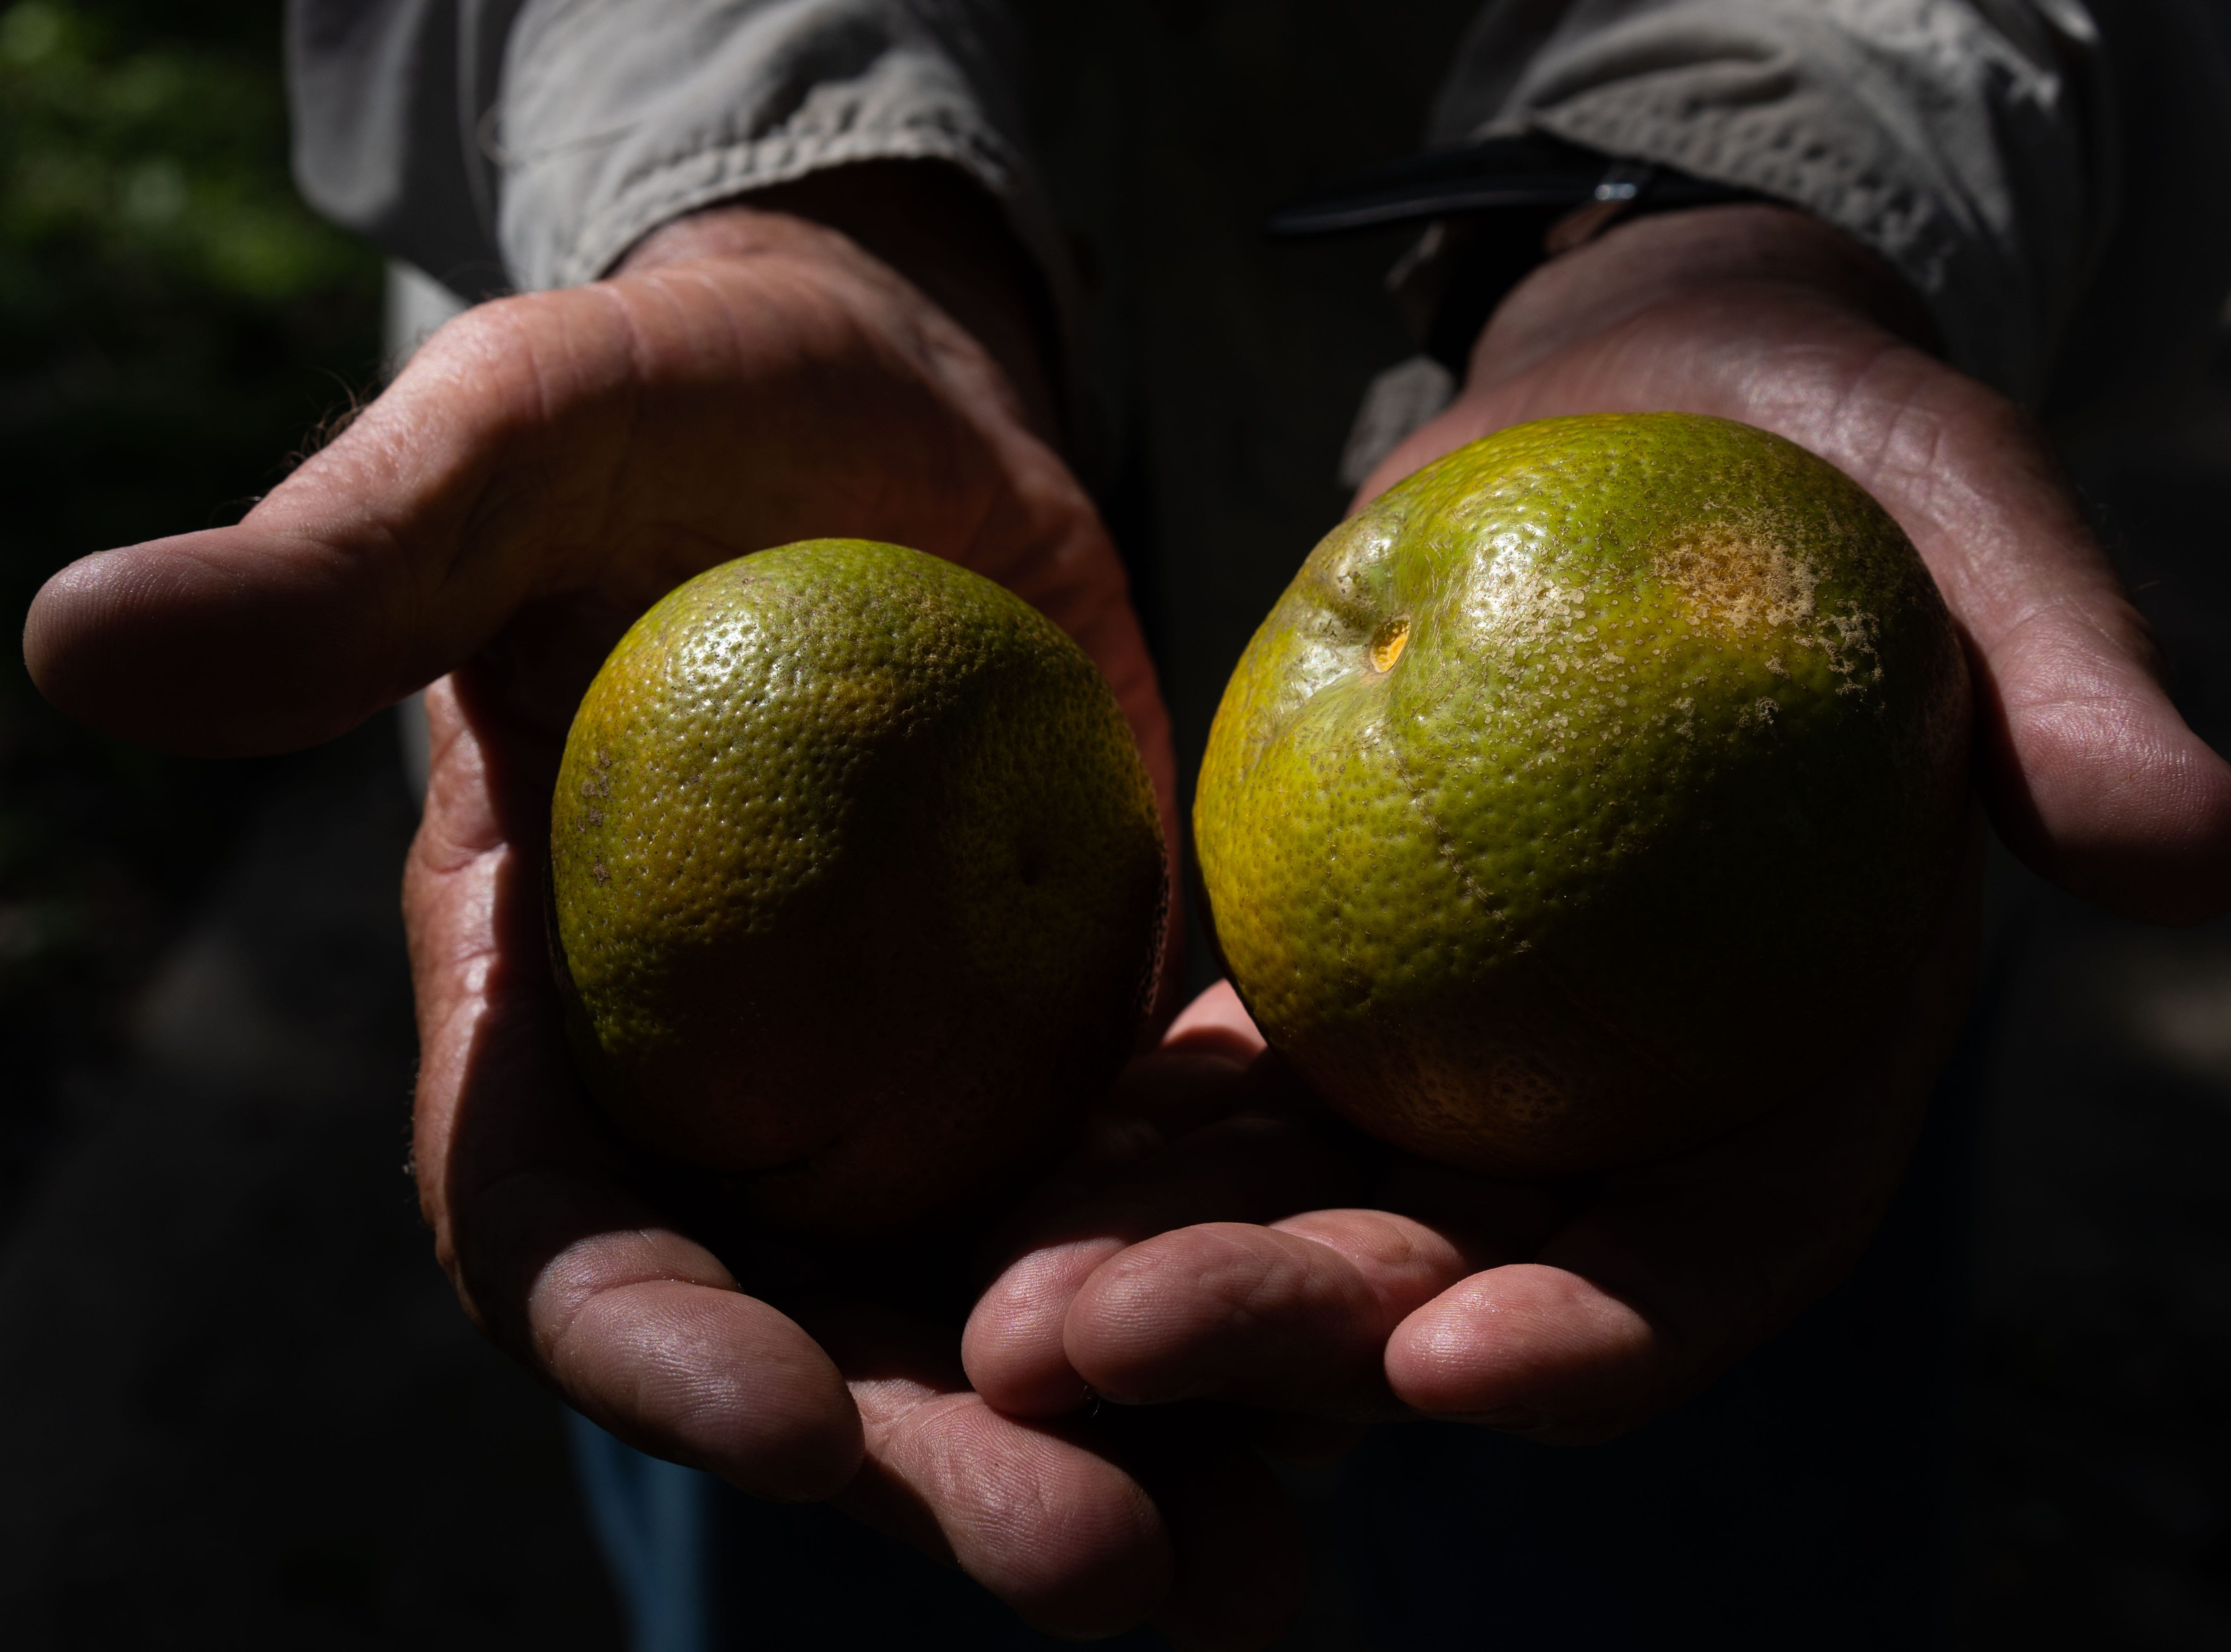 Martin Mason, the 75-year-old owner of Tropical Oaks Farm in LaBelle, Florida, holds out two freshly plucked Sugar Belle tangerines, from his first crop since the destruction caused by Hurricane Irma. The hurricane cost Mason at least a half-million dollars in damages, he says.